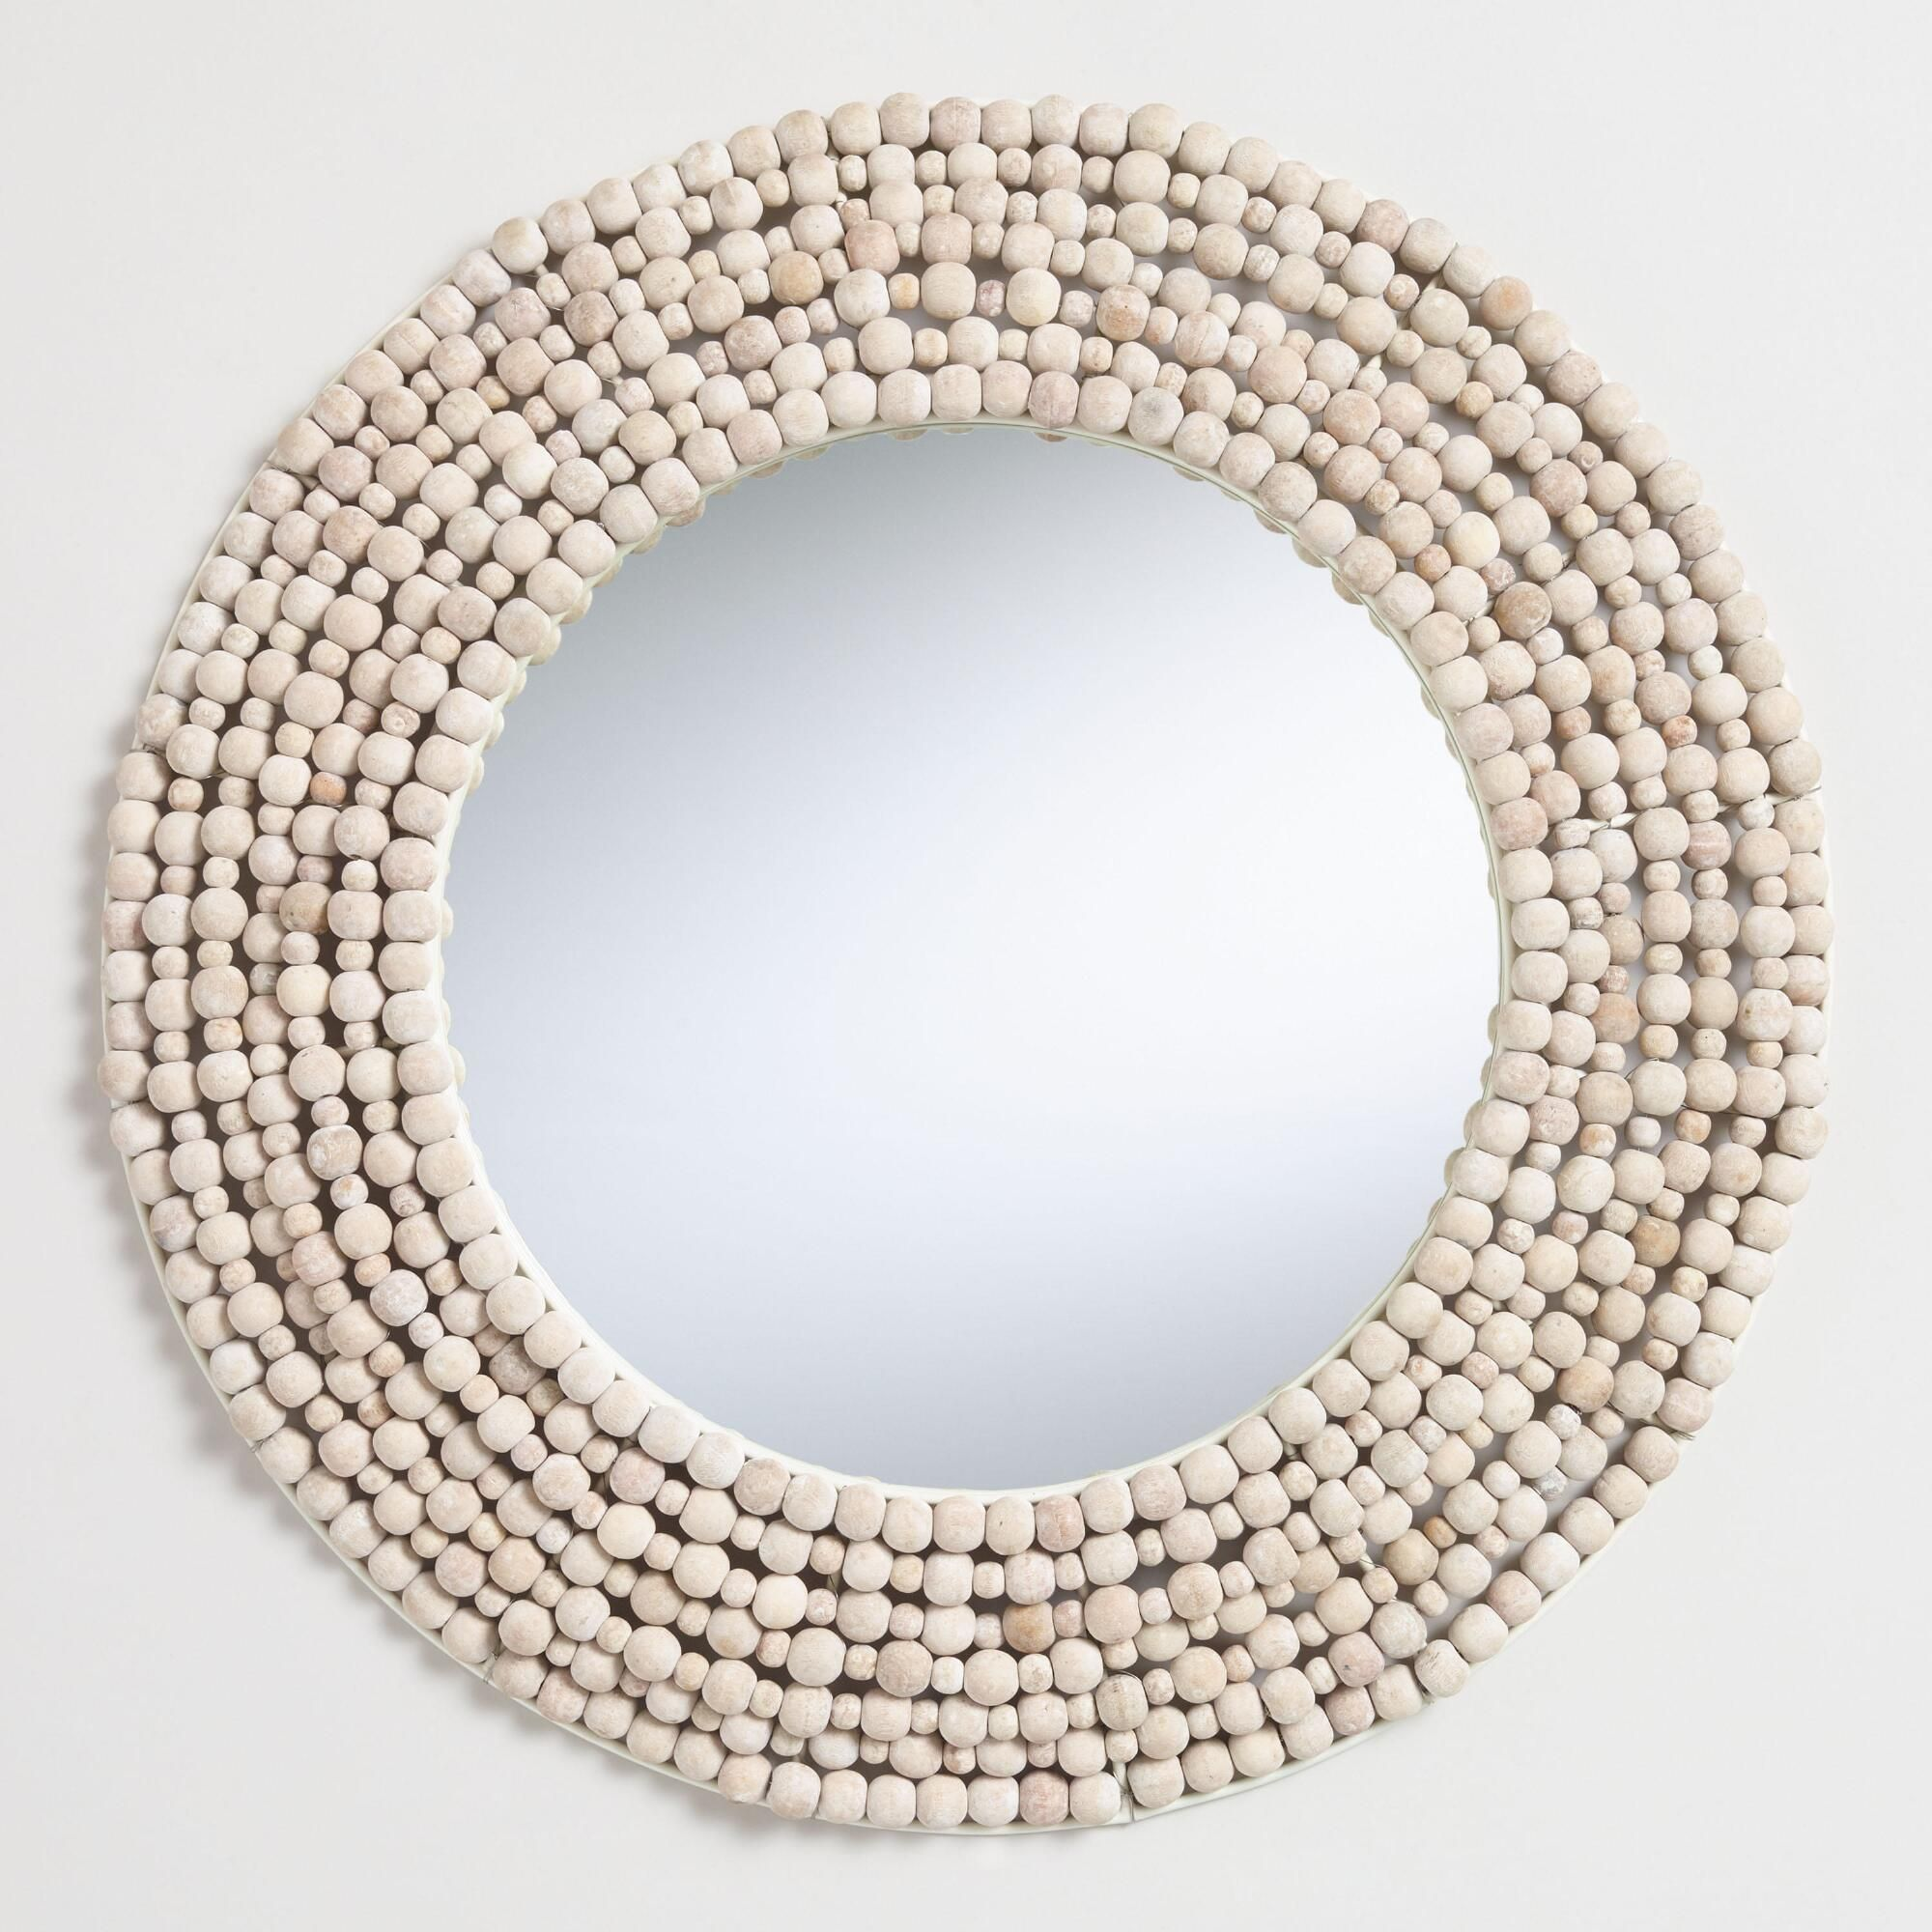 Round white wood bead wall mirror by world market in products